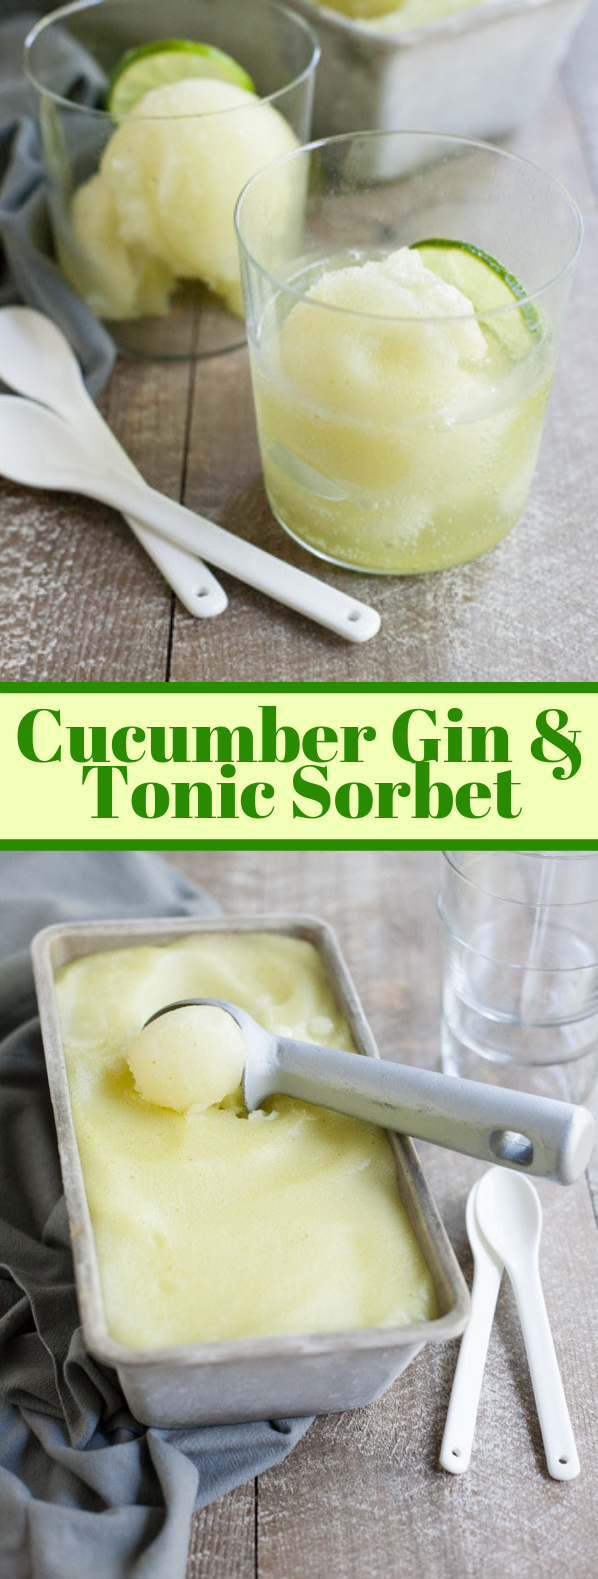 CUCUMBER GIN AND TONIC SORBET #drink #icycocktail